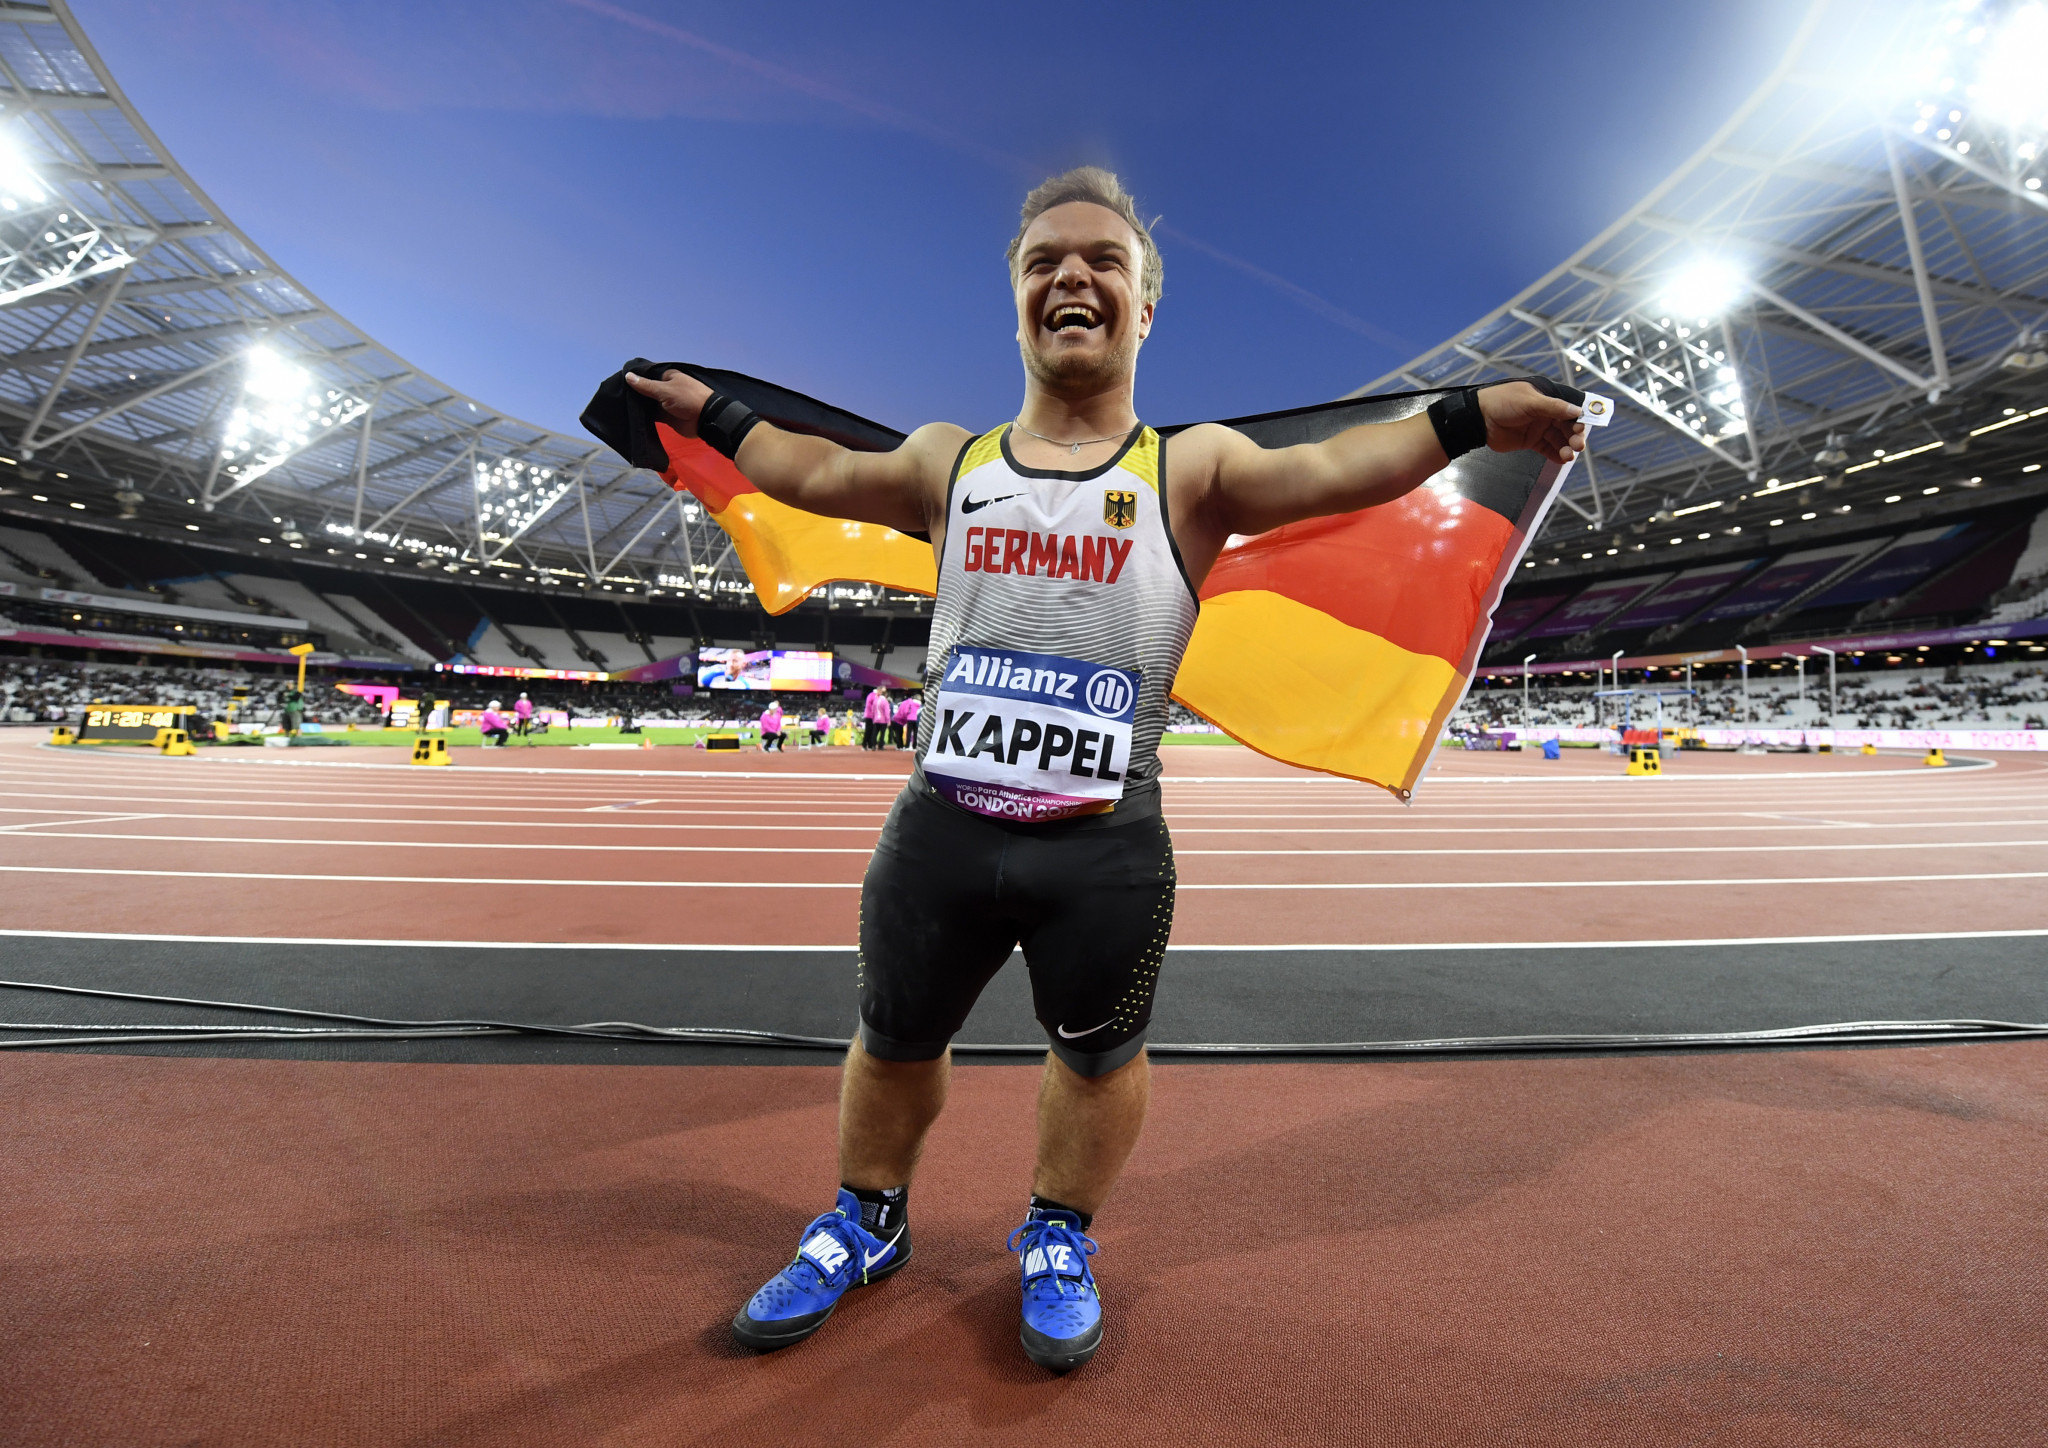 Paralympic champion Kappel says Tokyo 2020 should not go ahead without coronavirus vaccine